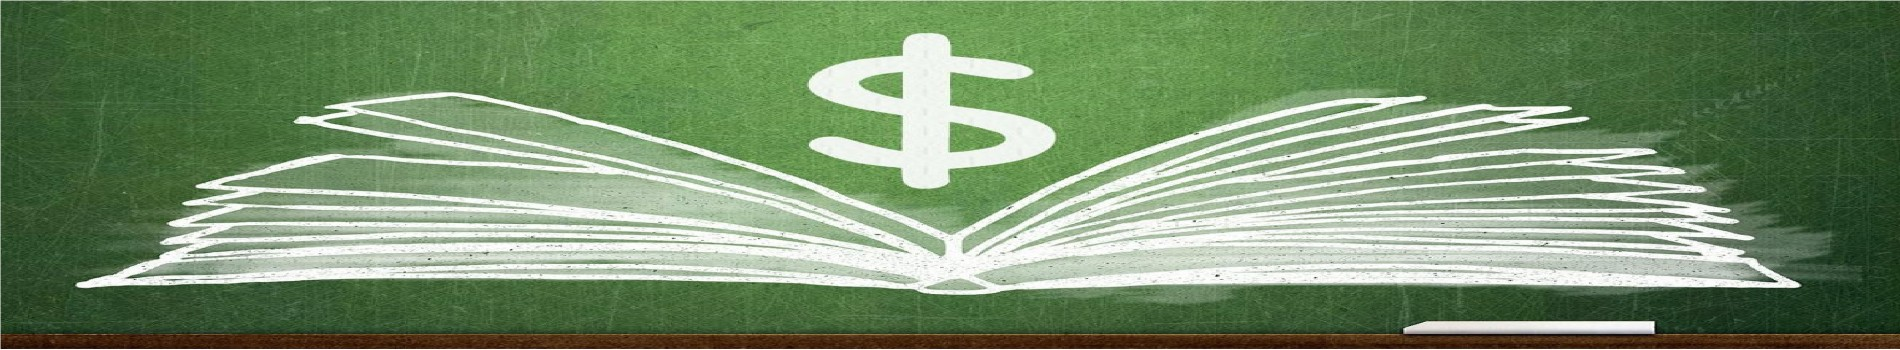 The Endless Search For More Knowledge About Personal Finance, Wealth Management, & Investing.